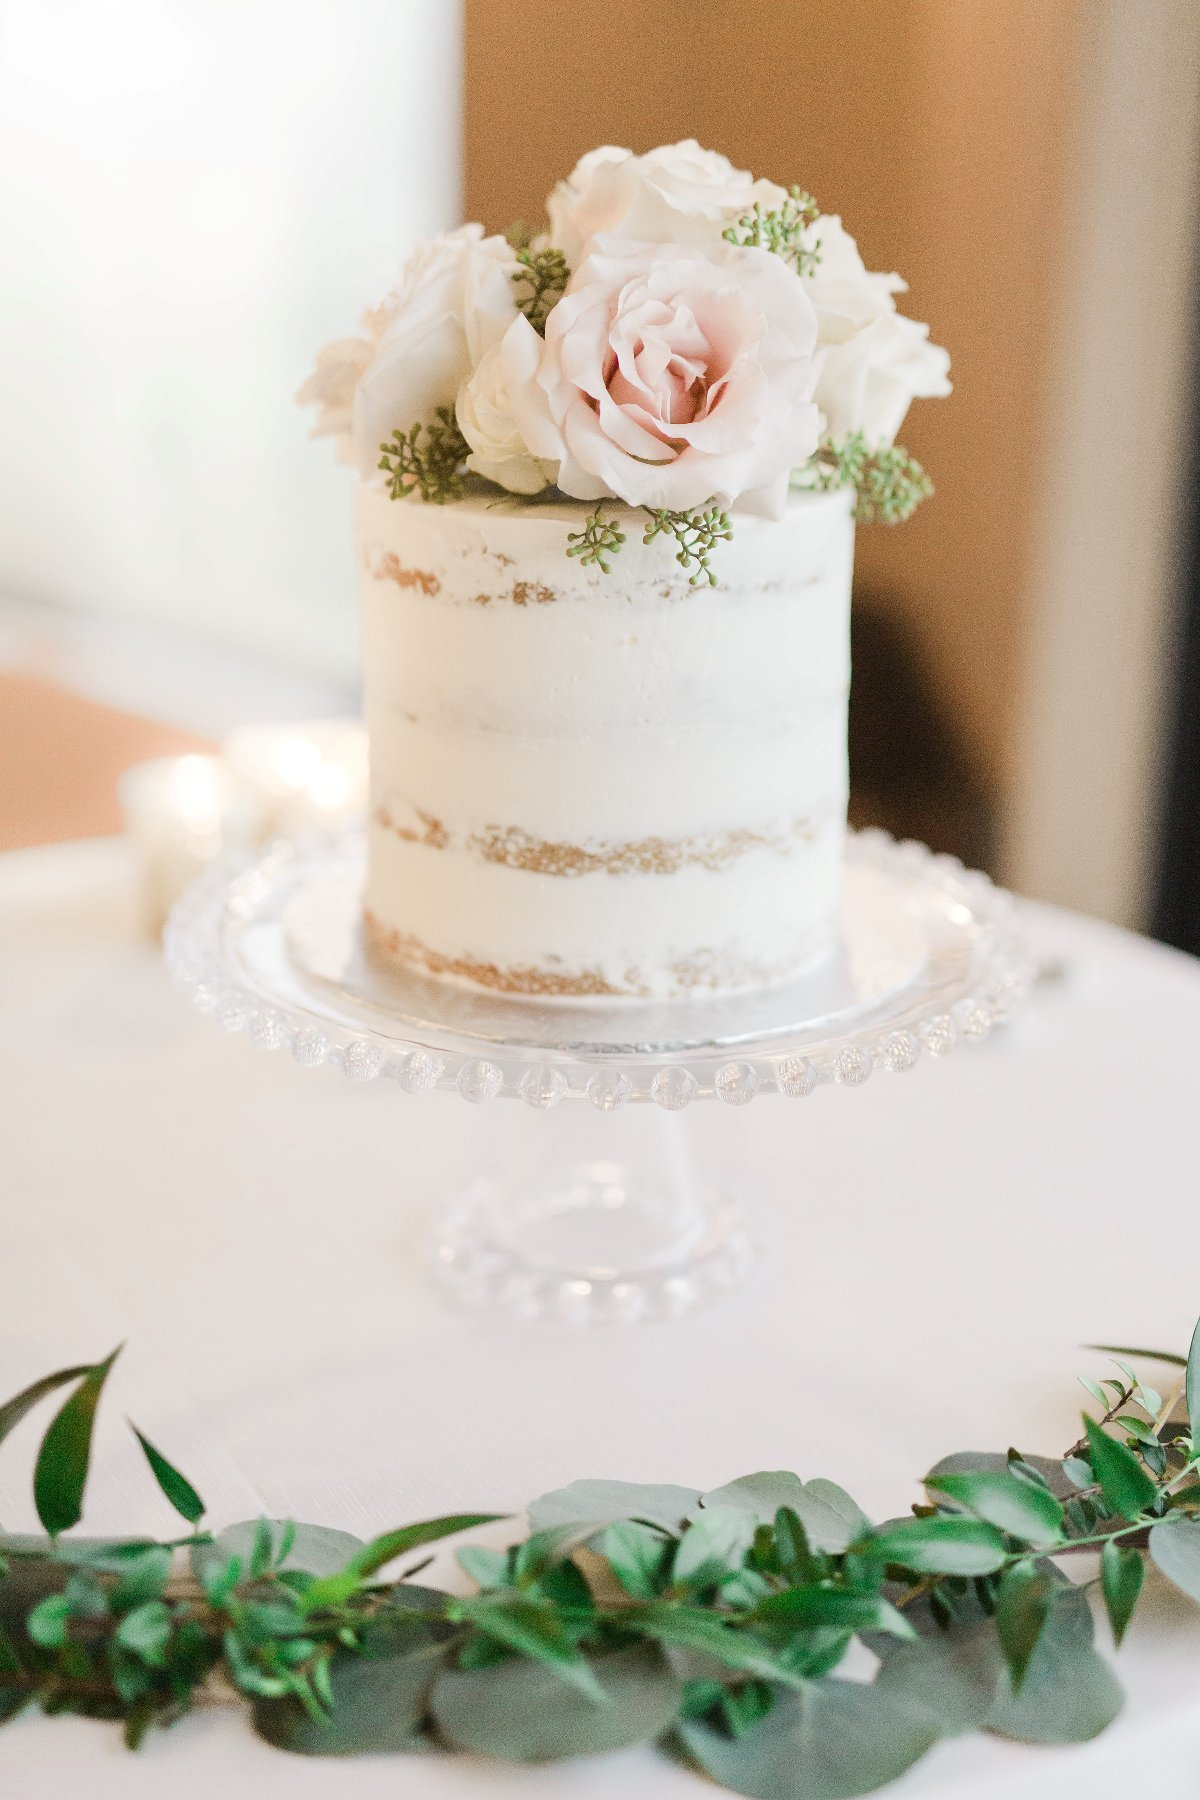 Whippt Semi-Naked cutting Cake Design